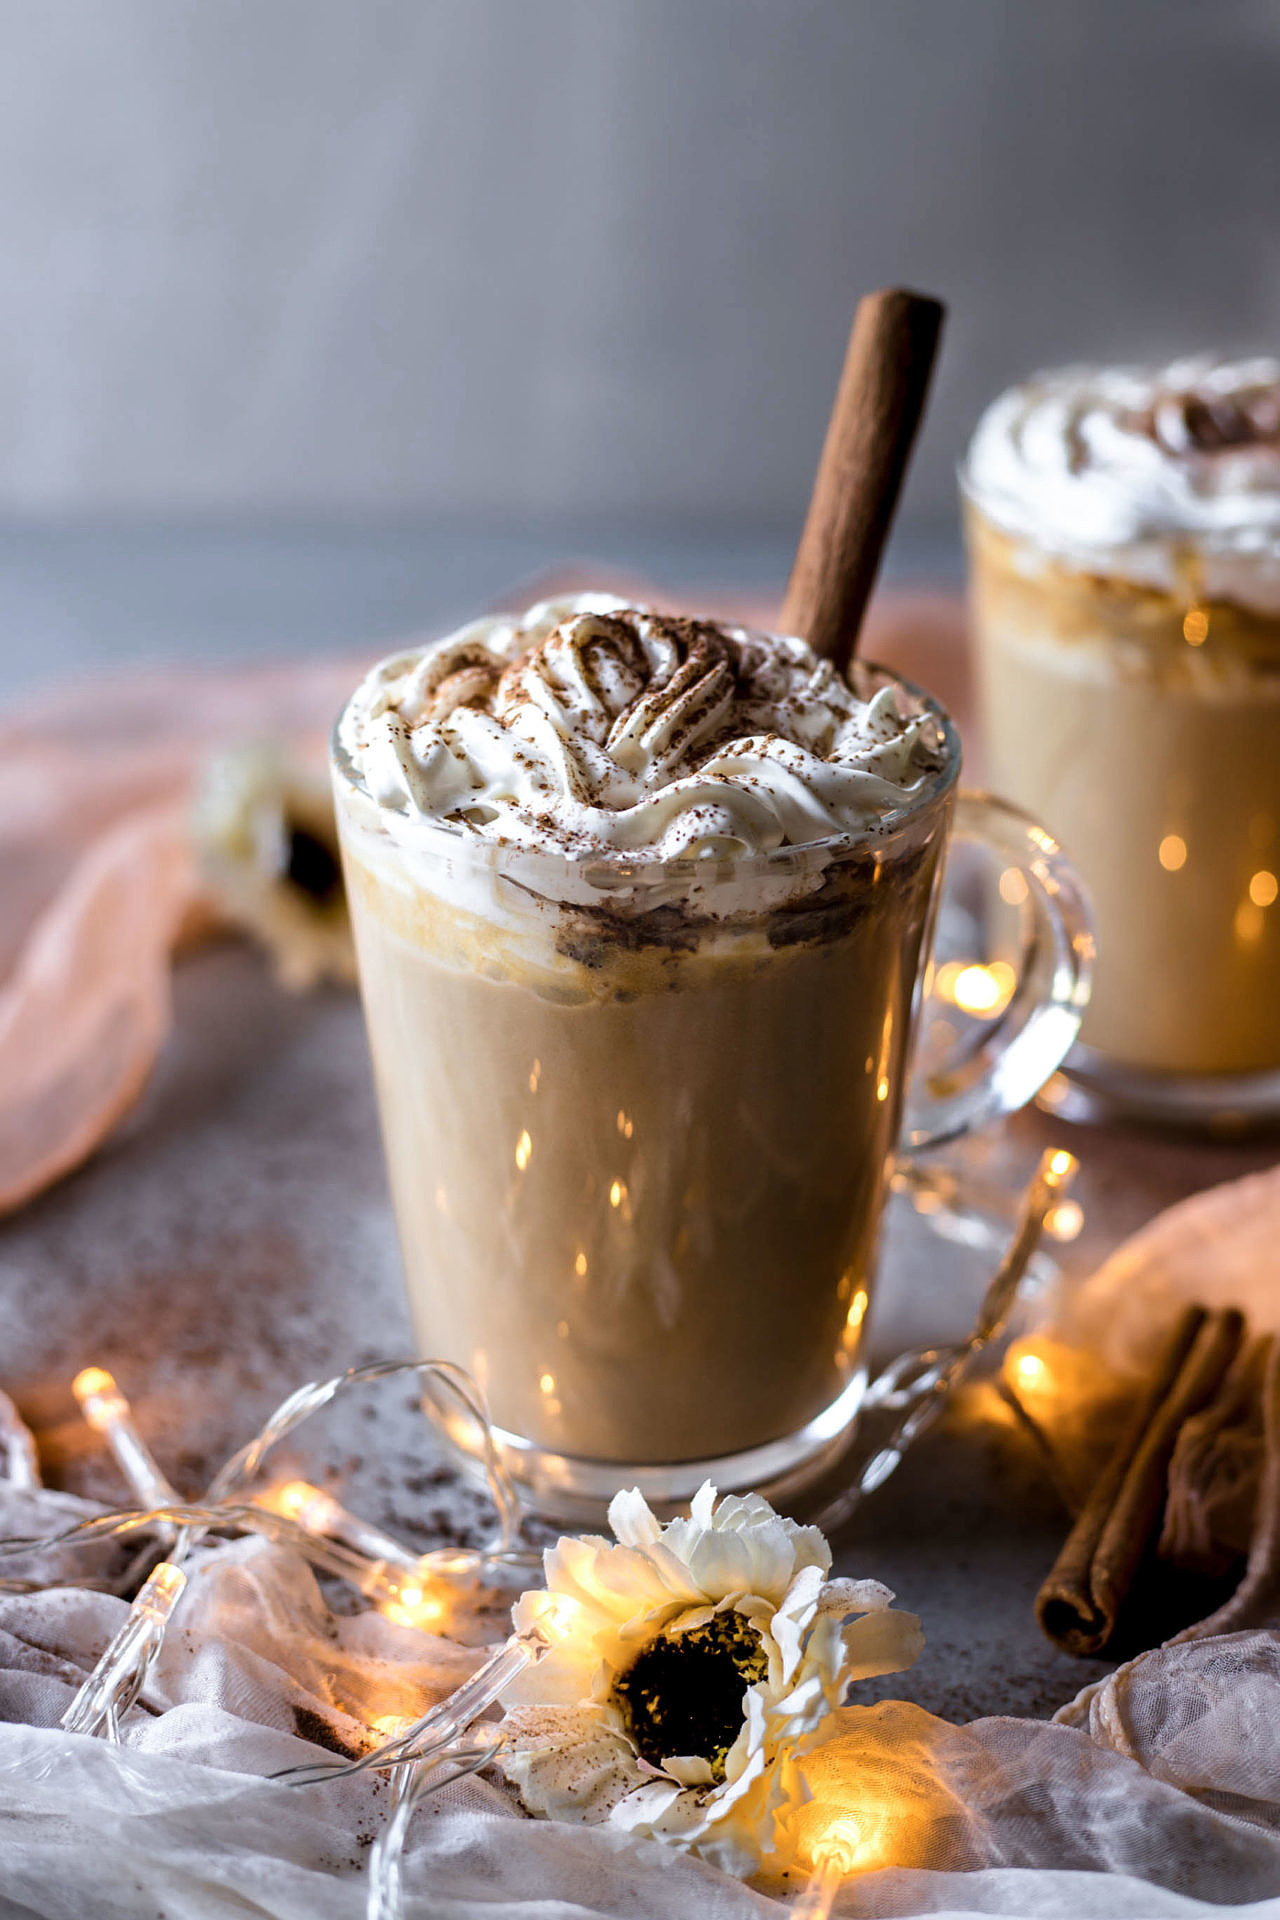 This Low FODMAP Pumpkin Spice Latte is pumpkin infused, naturally sweetened, perfectly spiced, customizable and so delicious.